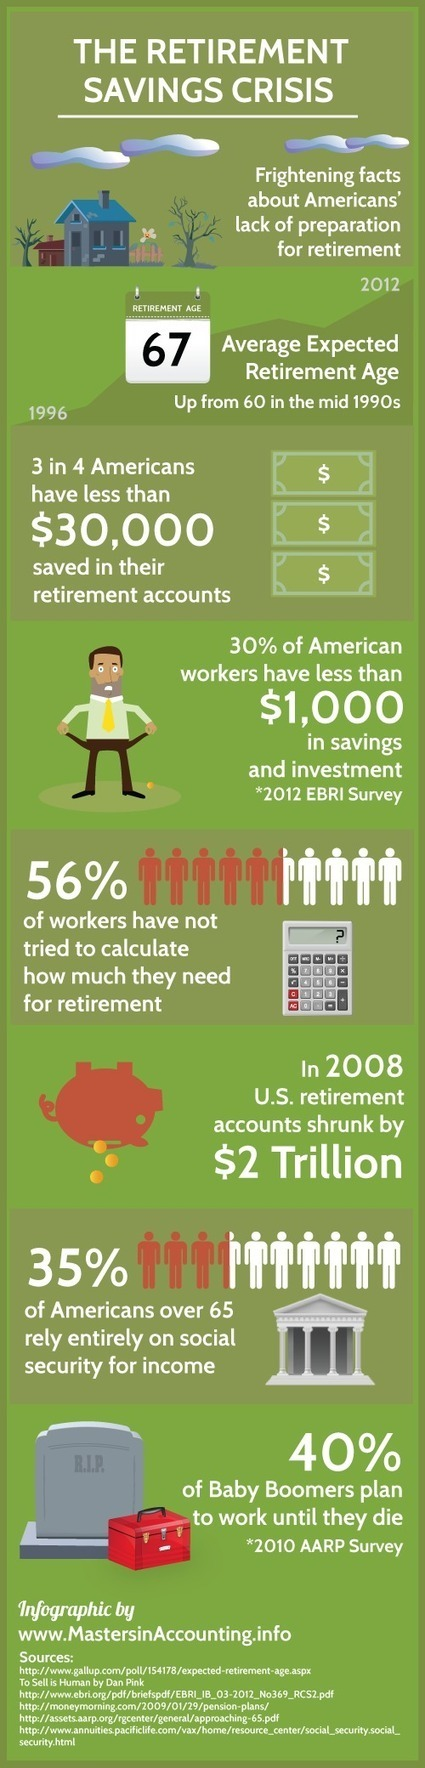 The Retirement Savings Crisis: An Illustration | The Chicago Financial Planner | What are the Government Programs for seniors? | Scoop.it